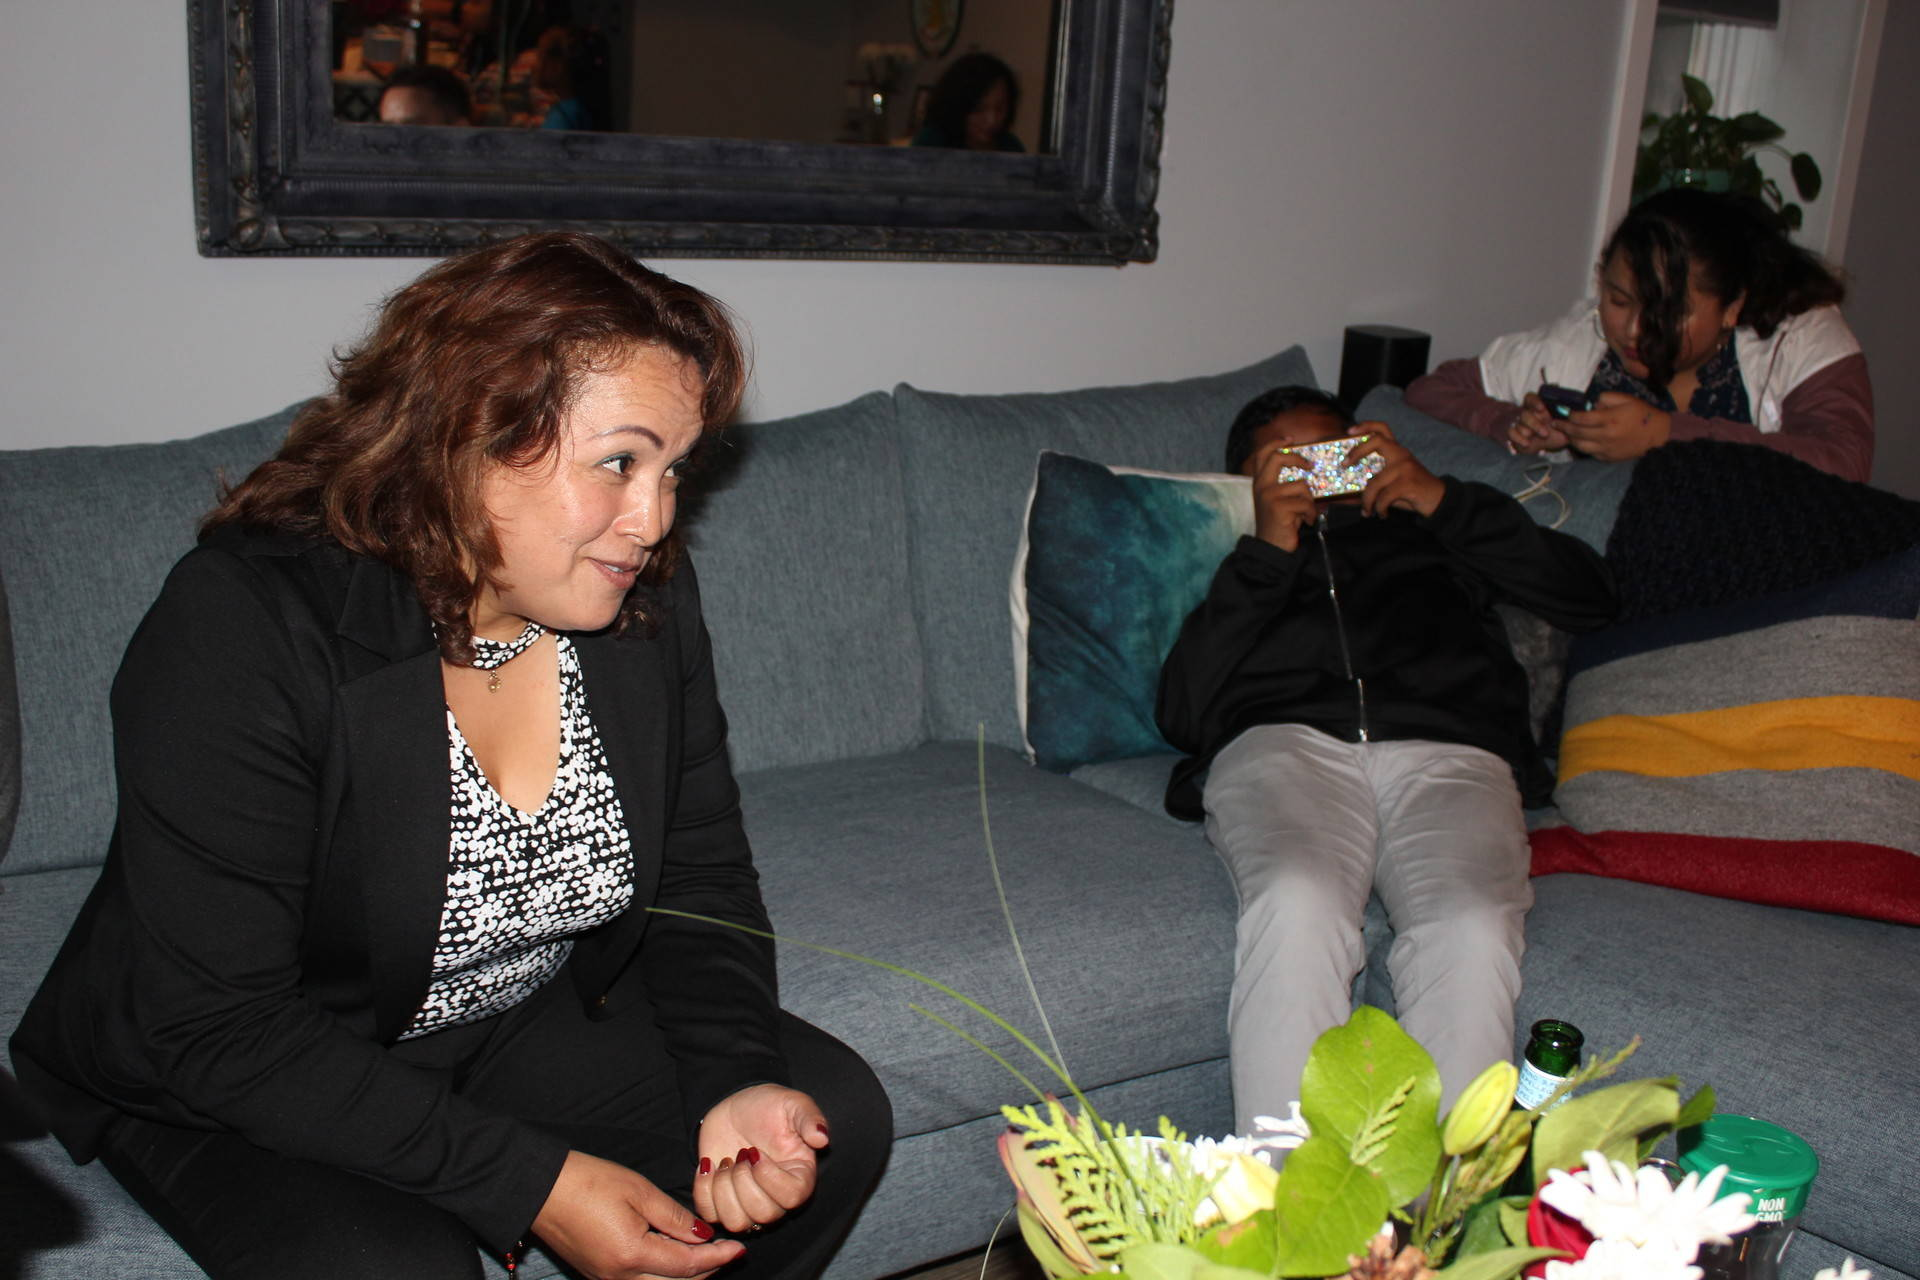 Maria Mendoza-Sanchez (L) sits on a couch in her attorney's home with two of her four children after returning to the United States from Mexico following a 16-month deportation. Sara Hossaini/KQED